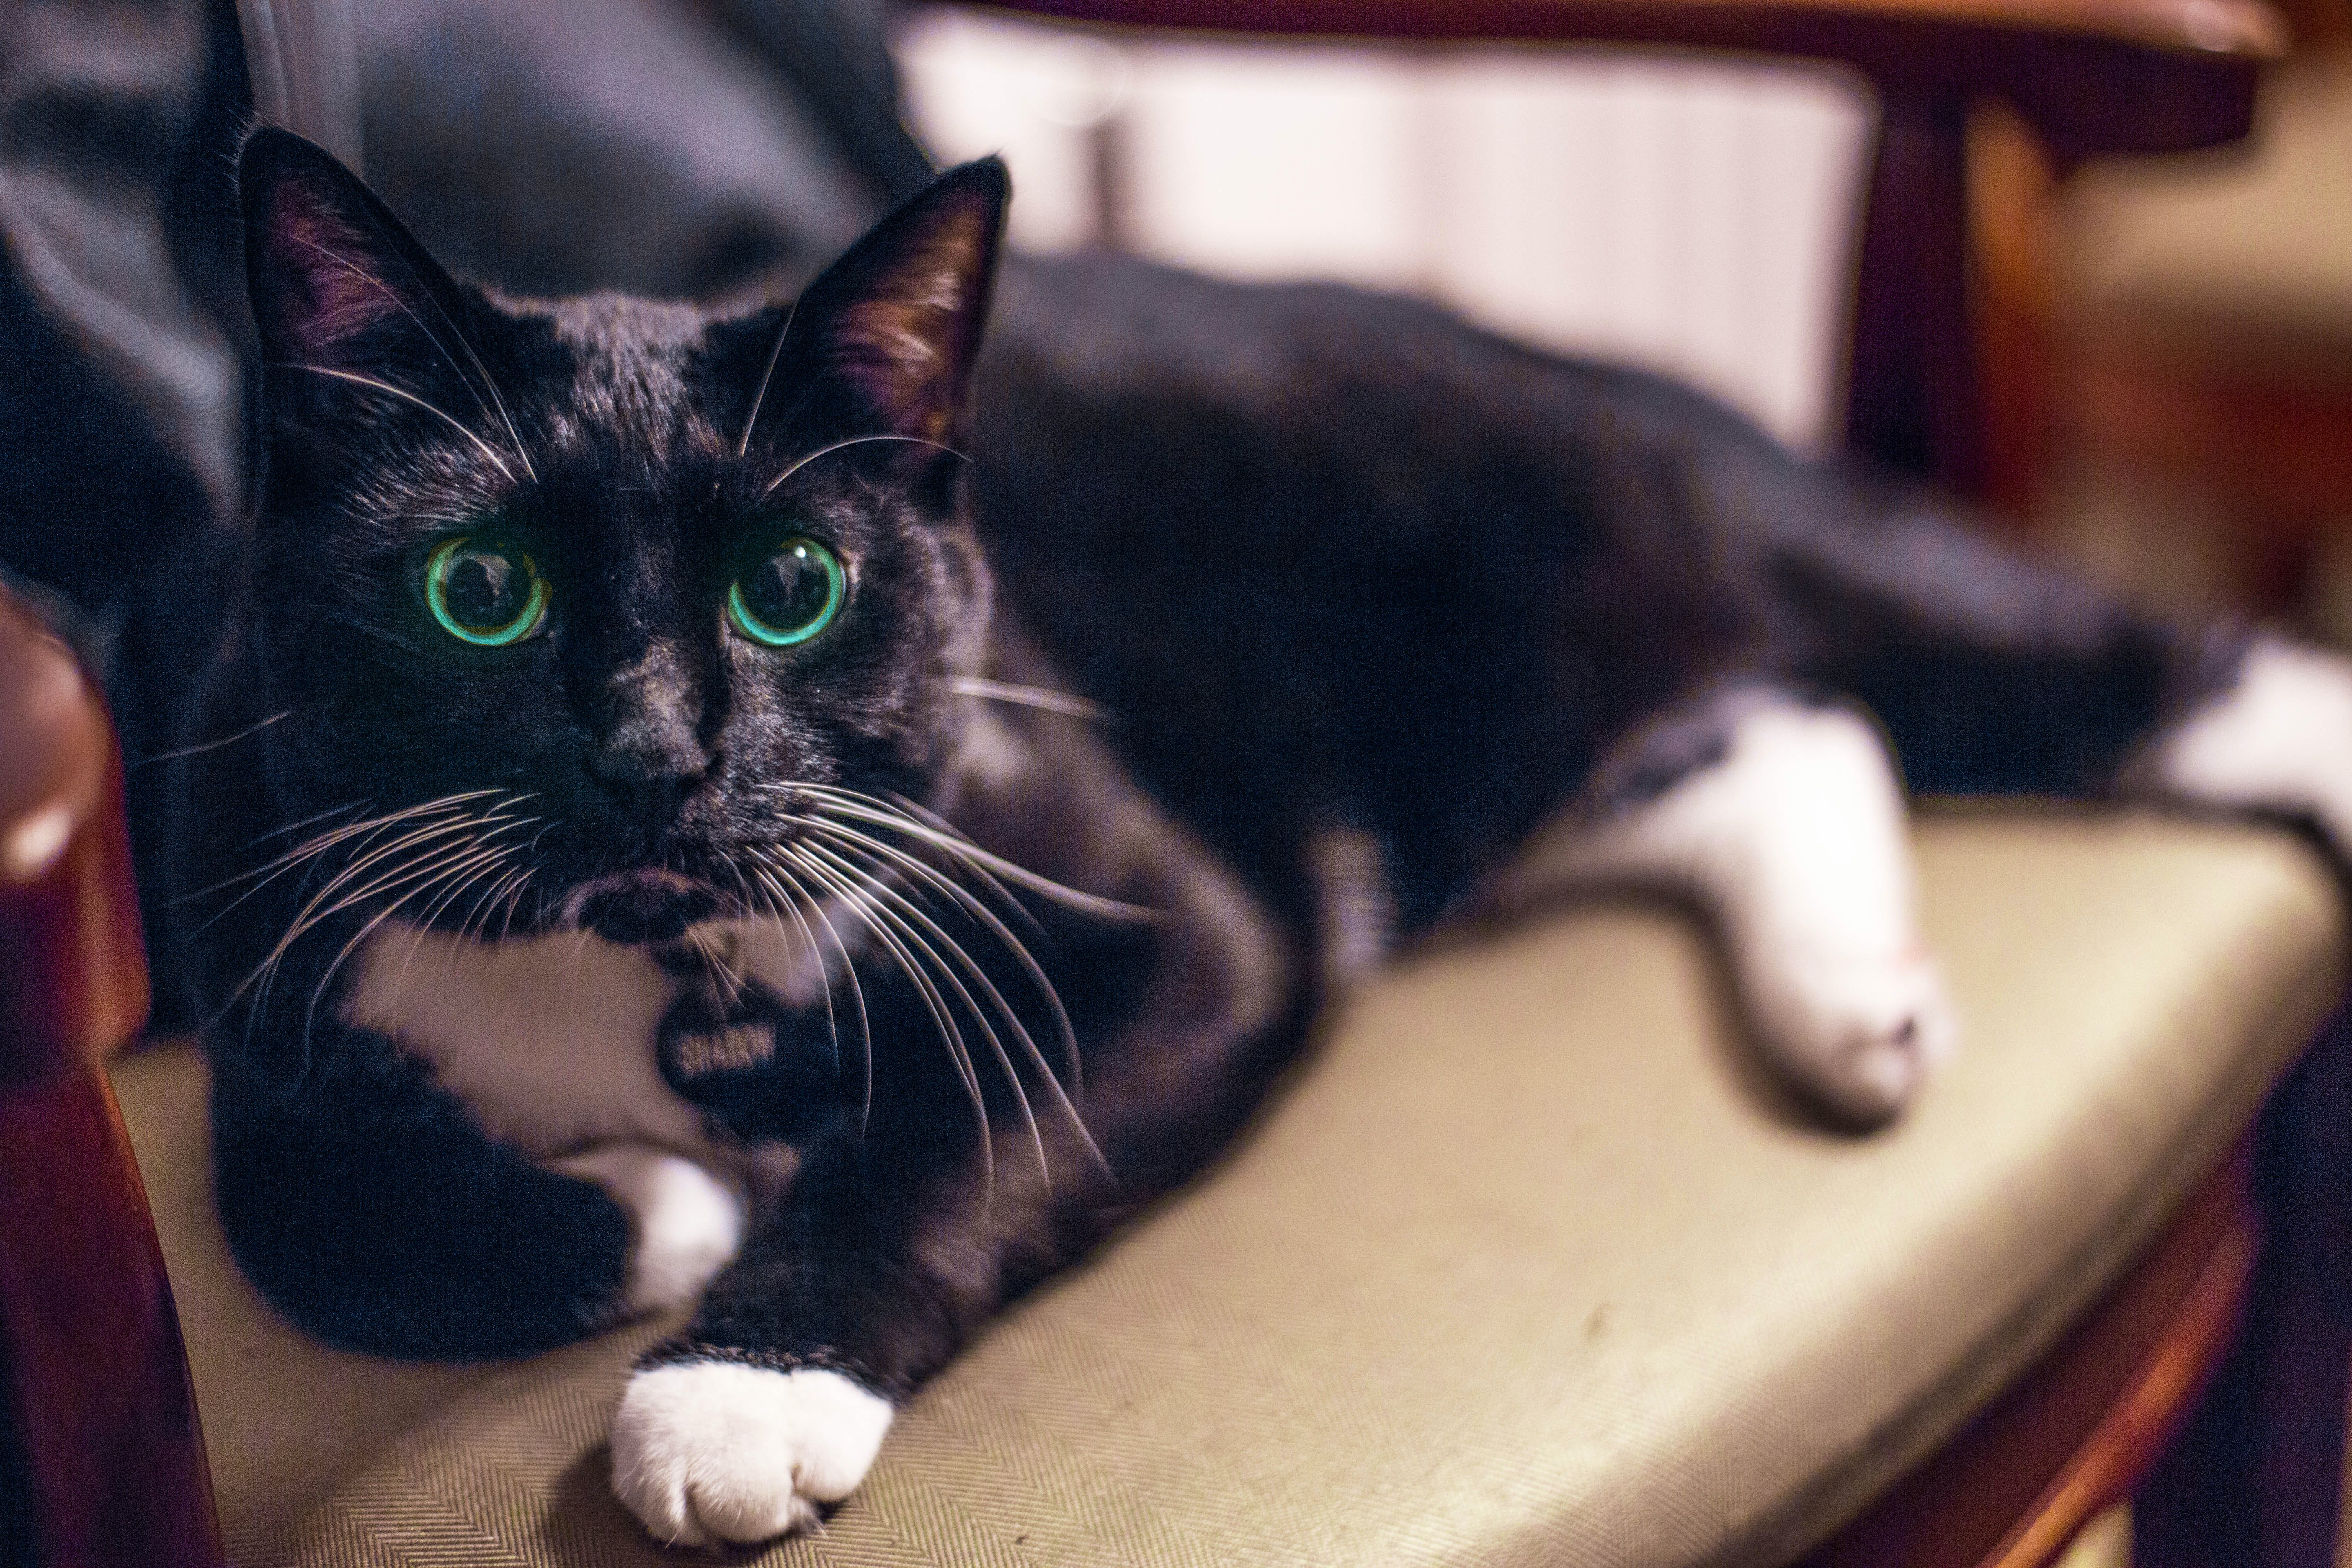 Free stock photo of canonpphoto, cat, chilling, green eyes